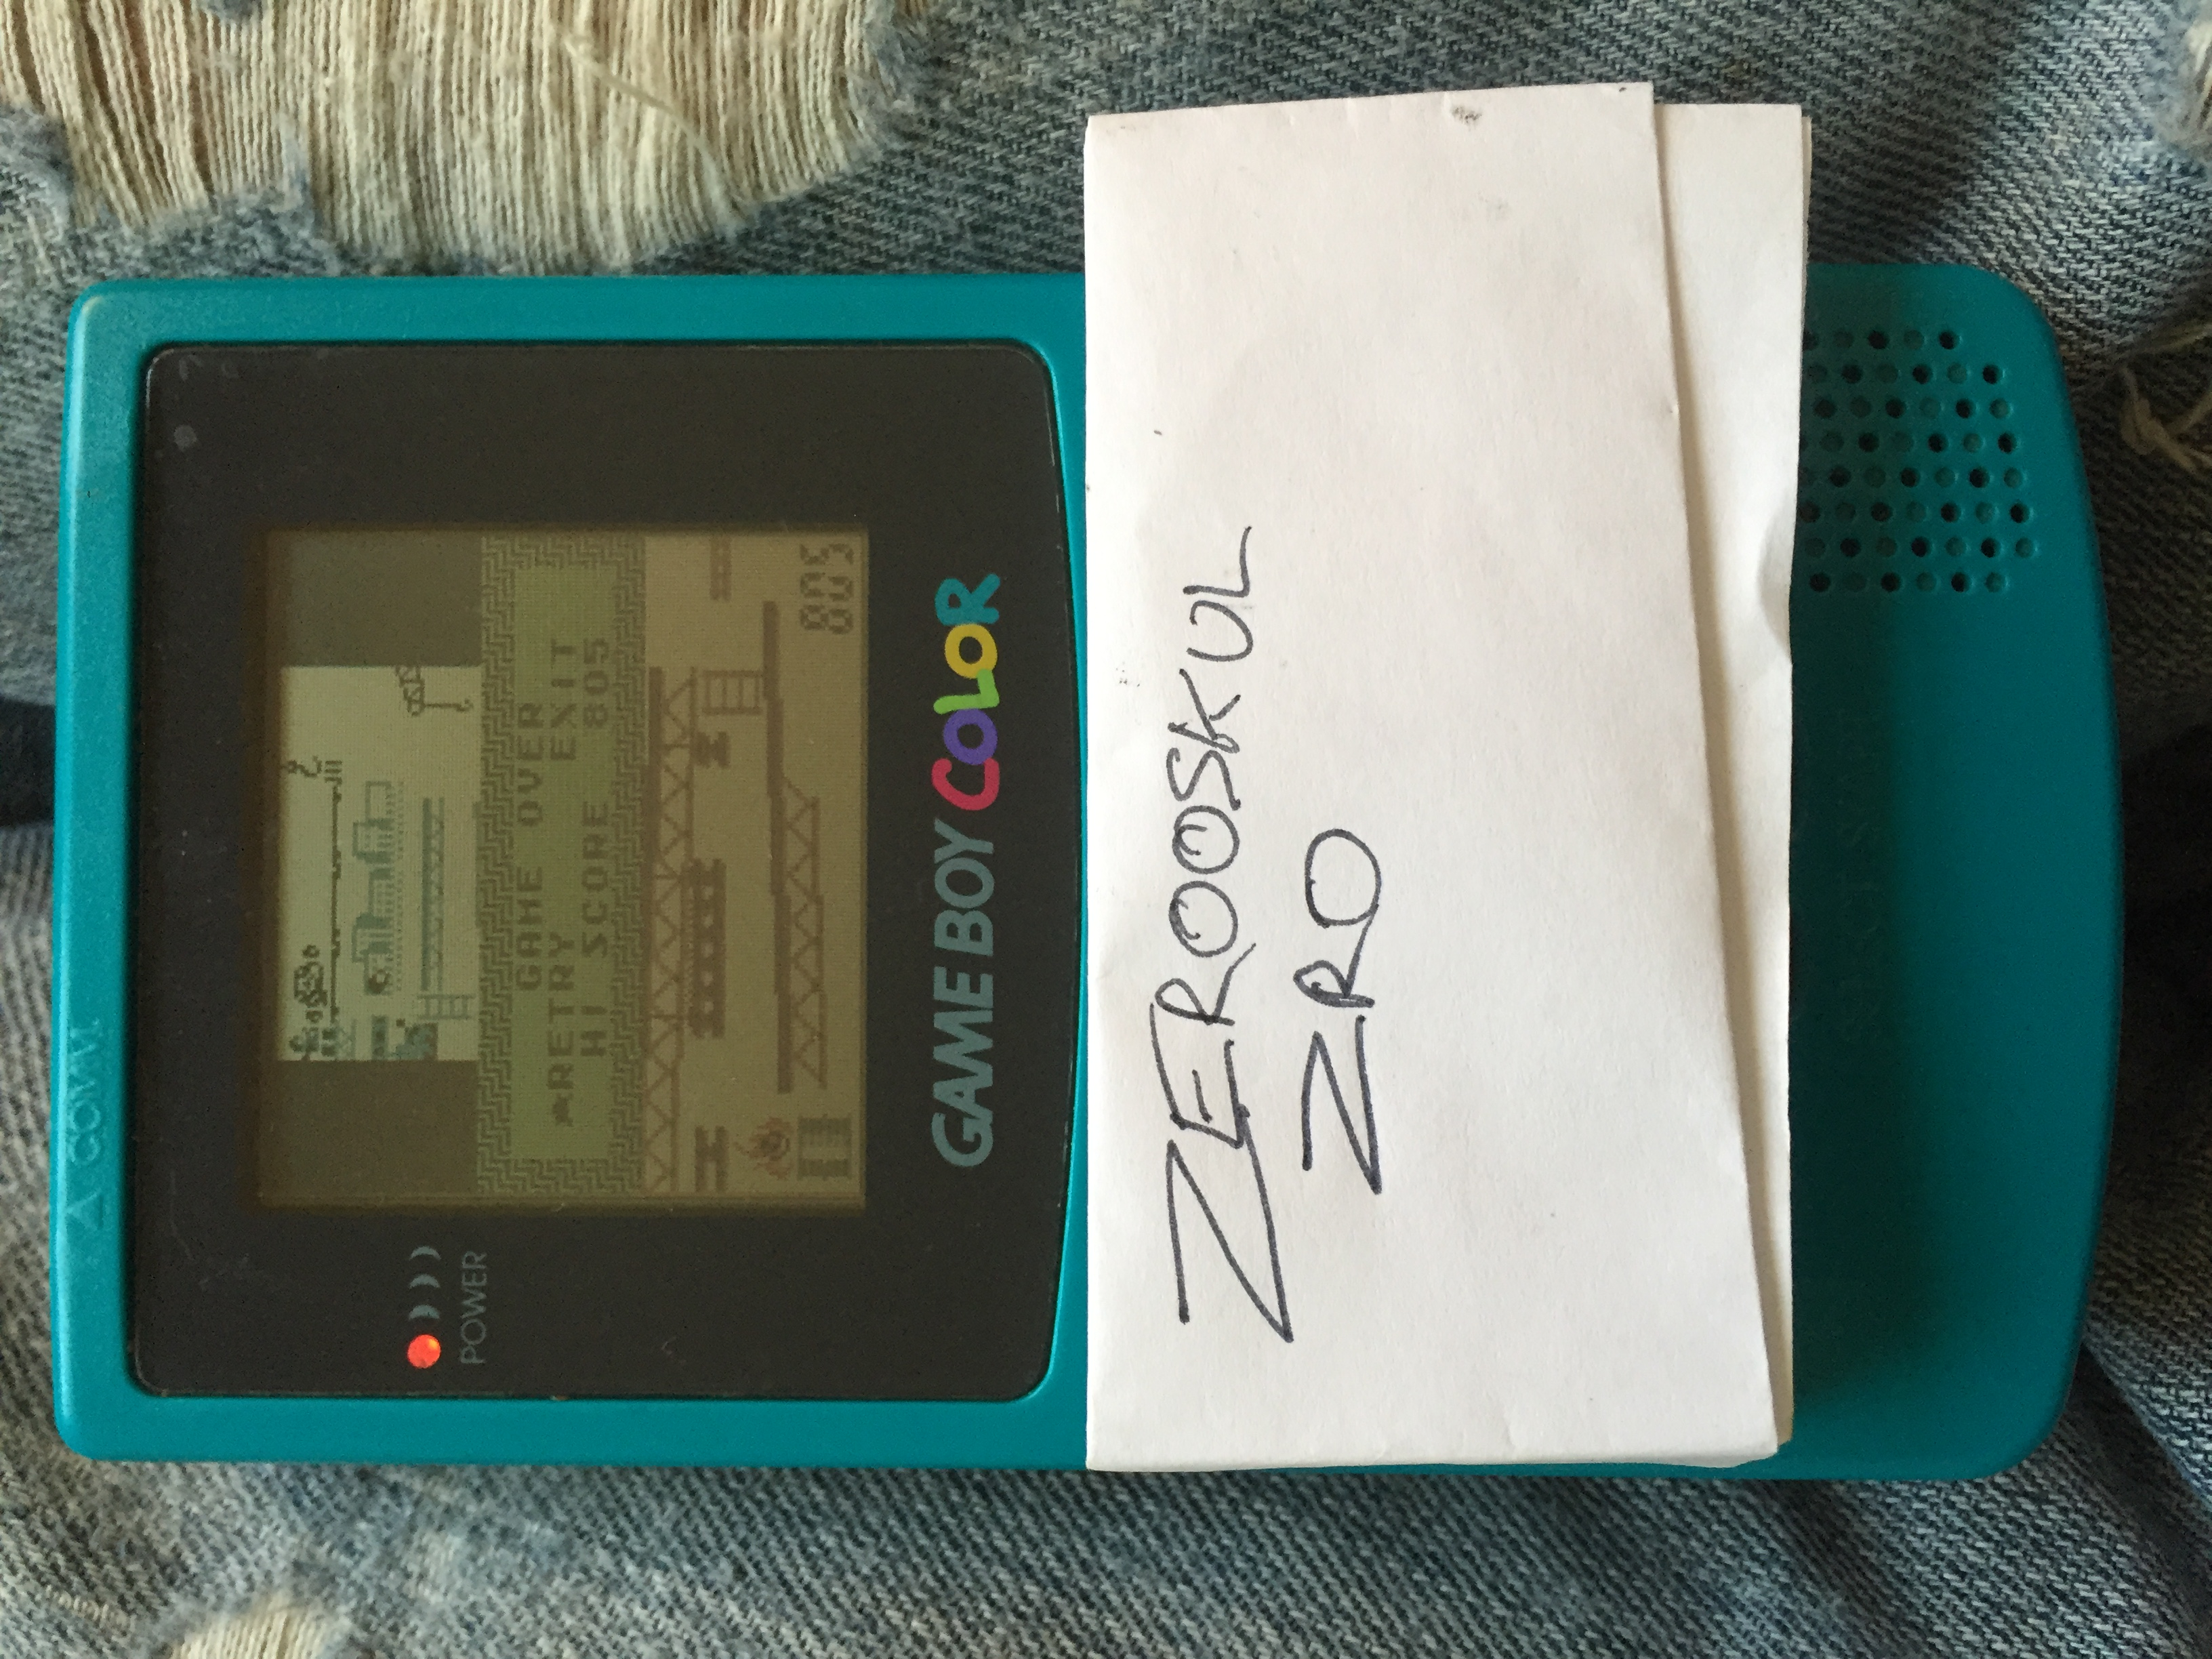 zerooskul: Game & Watch Gallery 2: Donkey Kong: Classic: Hard (Game Boy Color) 805 points on 2018-05-25 11:00:19